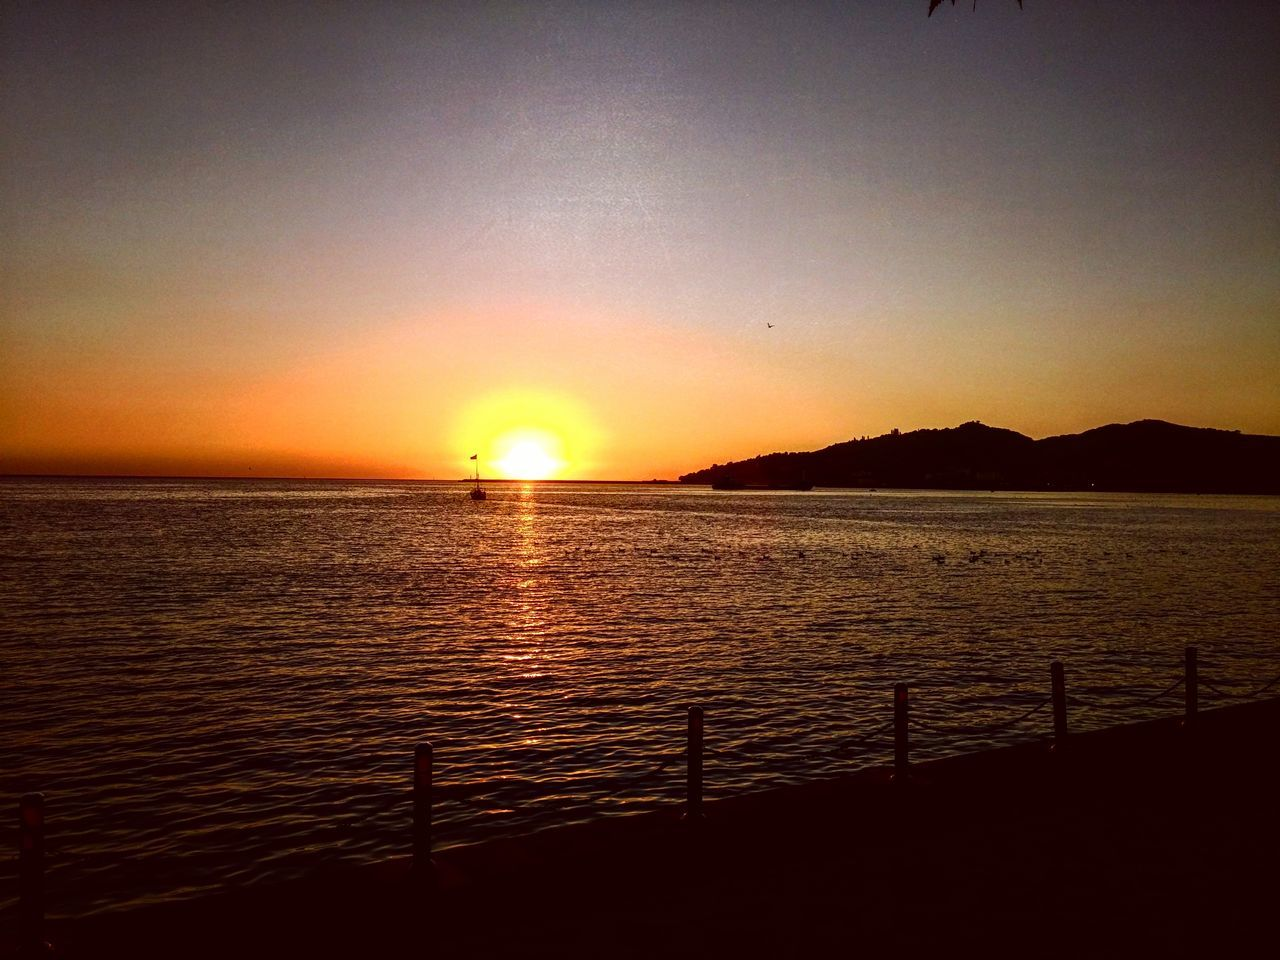 sunset, sun, scenics, beauty in nature, nature, tranquil scene, tranquility, sea, silhouette, sunlight, no people, orange color, idyllic, sky, outdoors, water, clear sky, summer, travel destinations, mountain, horizon over water, day